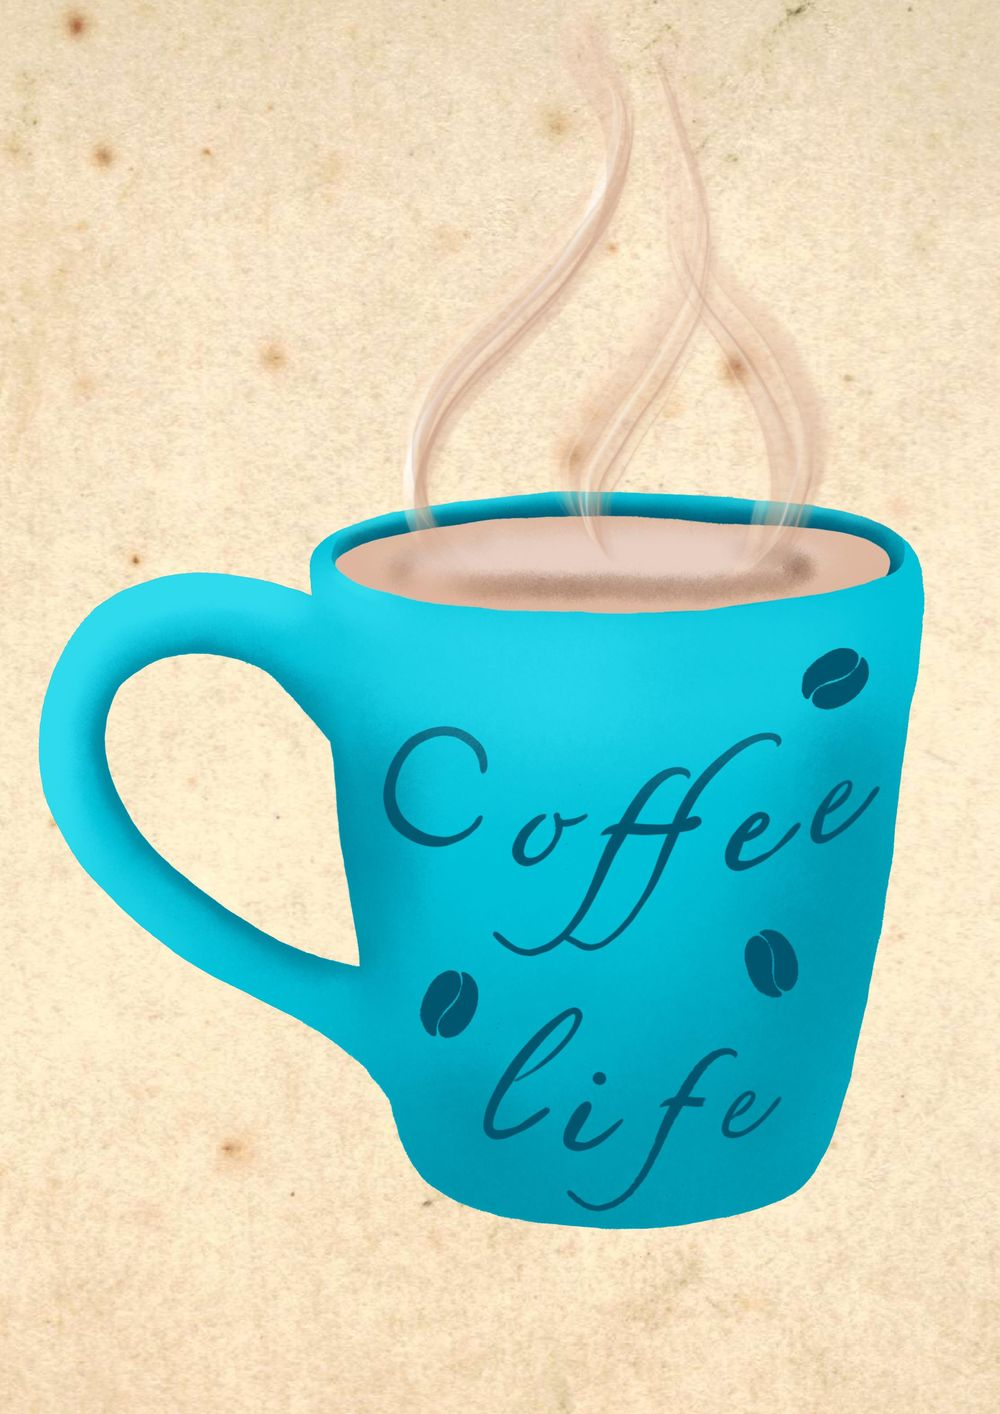 Coffee Life - image 1 - student project